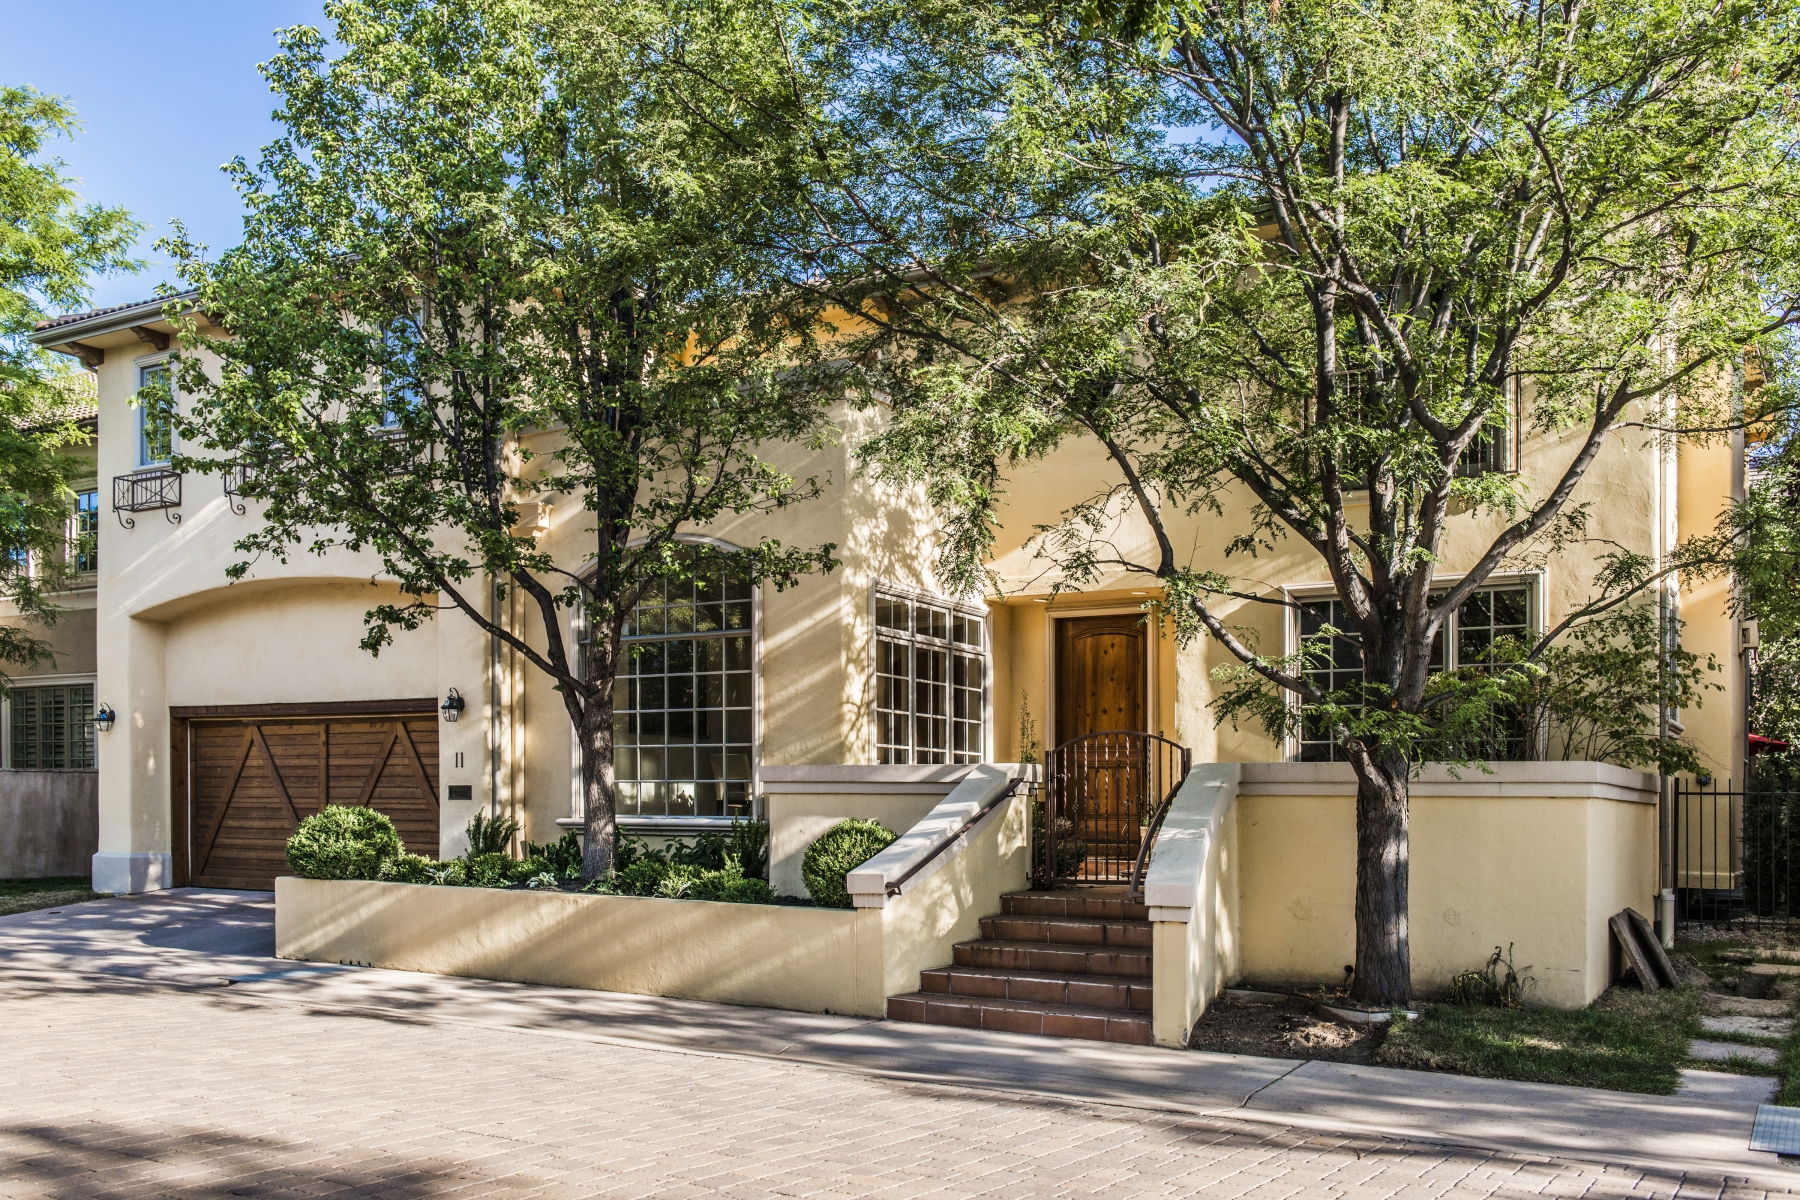 Property For Sale at Elegant and Sophisticated Mediterranean Style Home in Cherry Creek's Belcourt